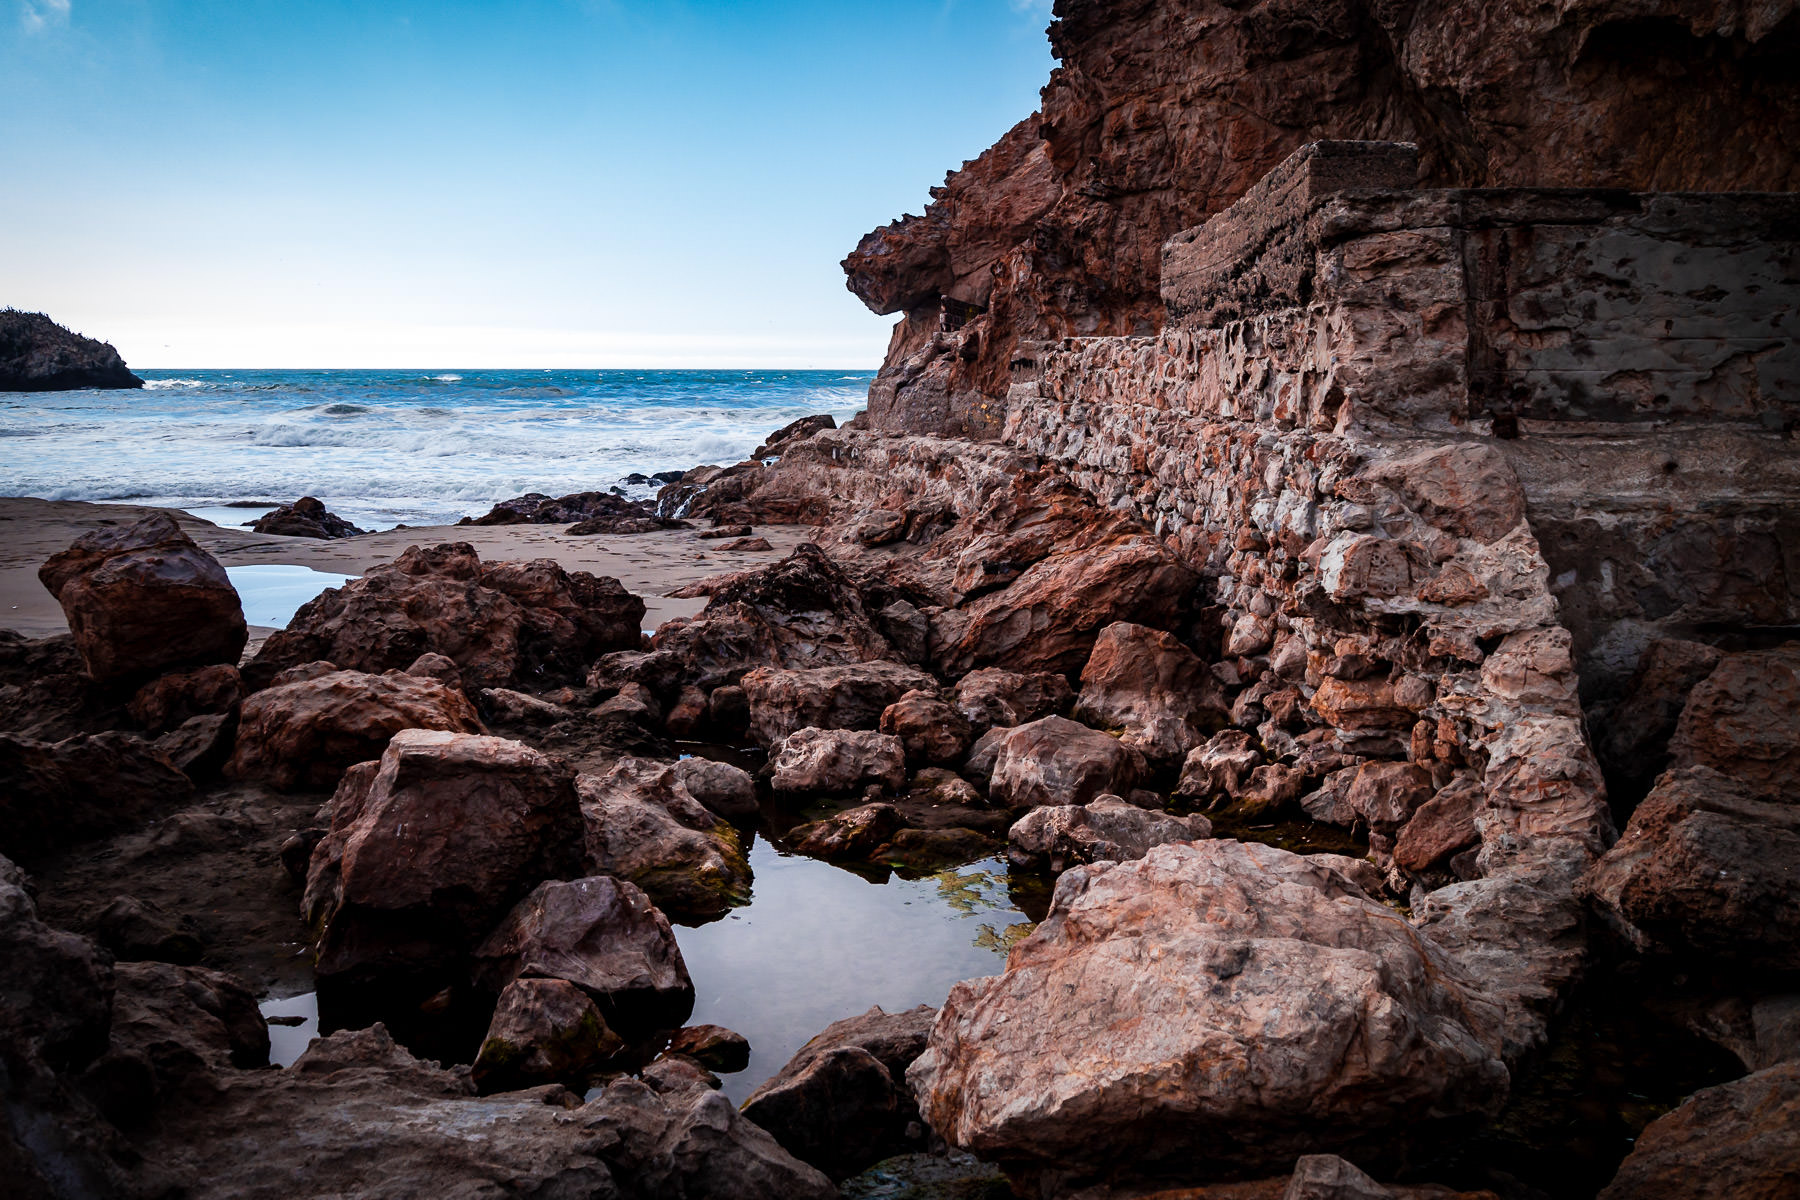 Rocks greet the Pacific Ocean near San Francisco's Sutro Baths ruins at Lands End.